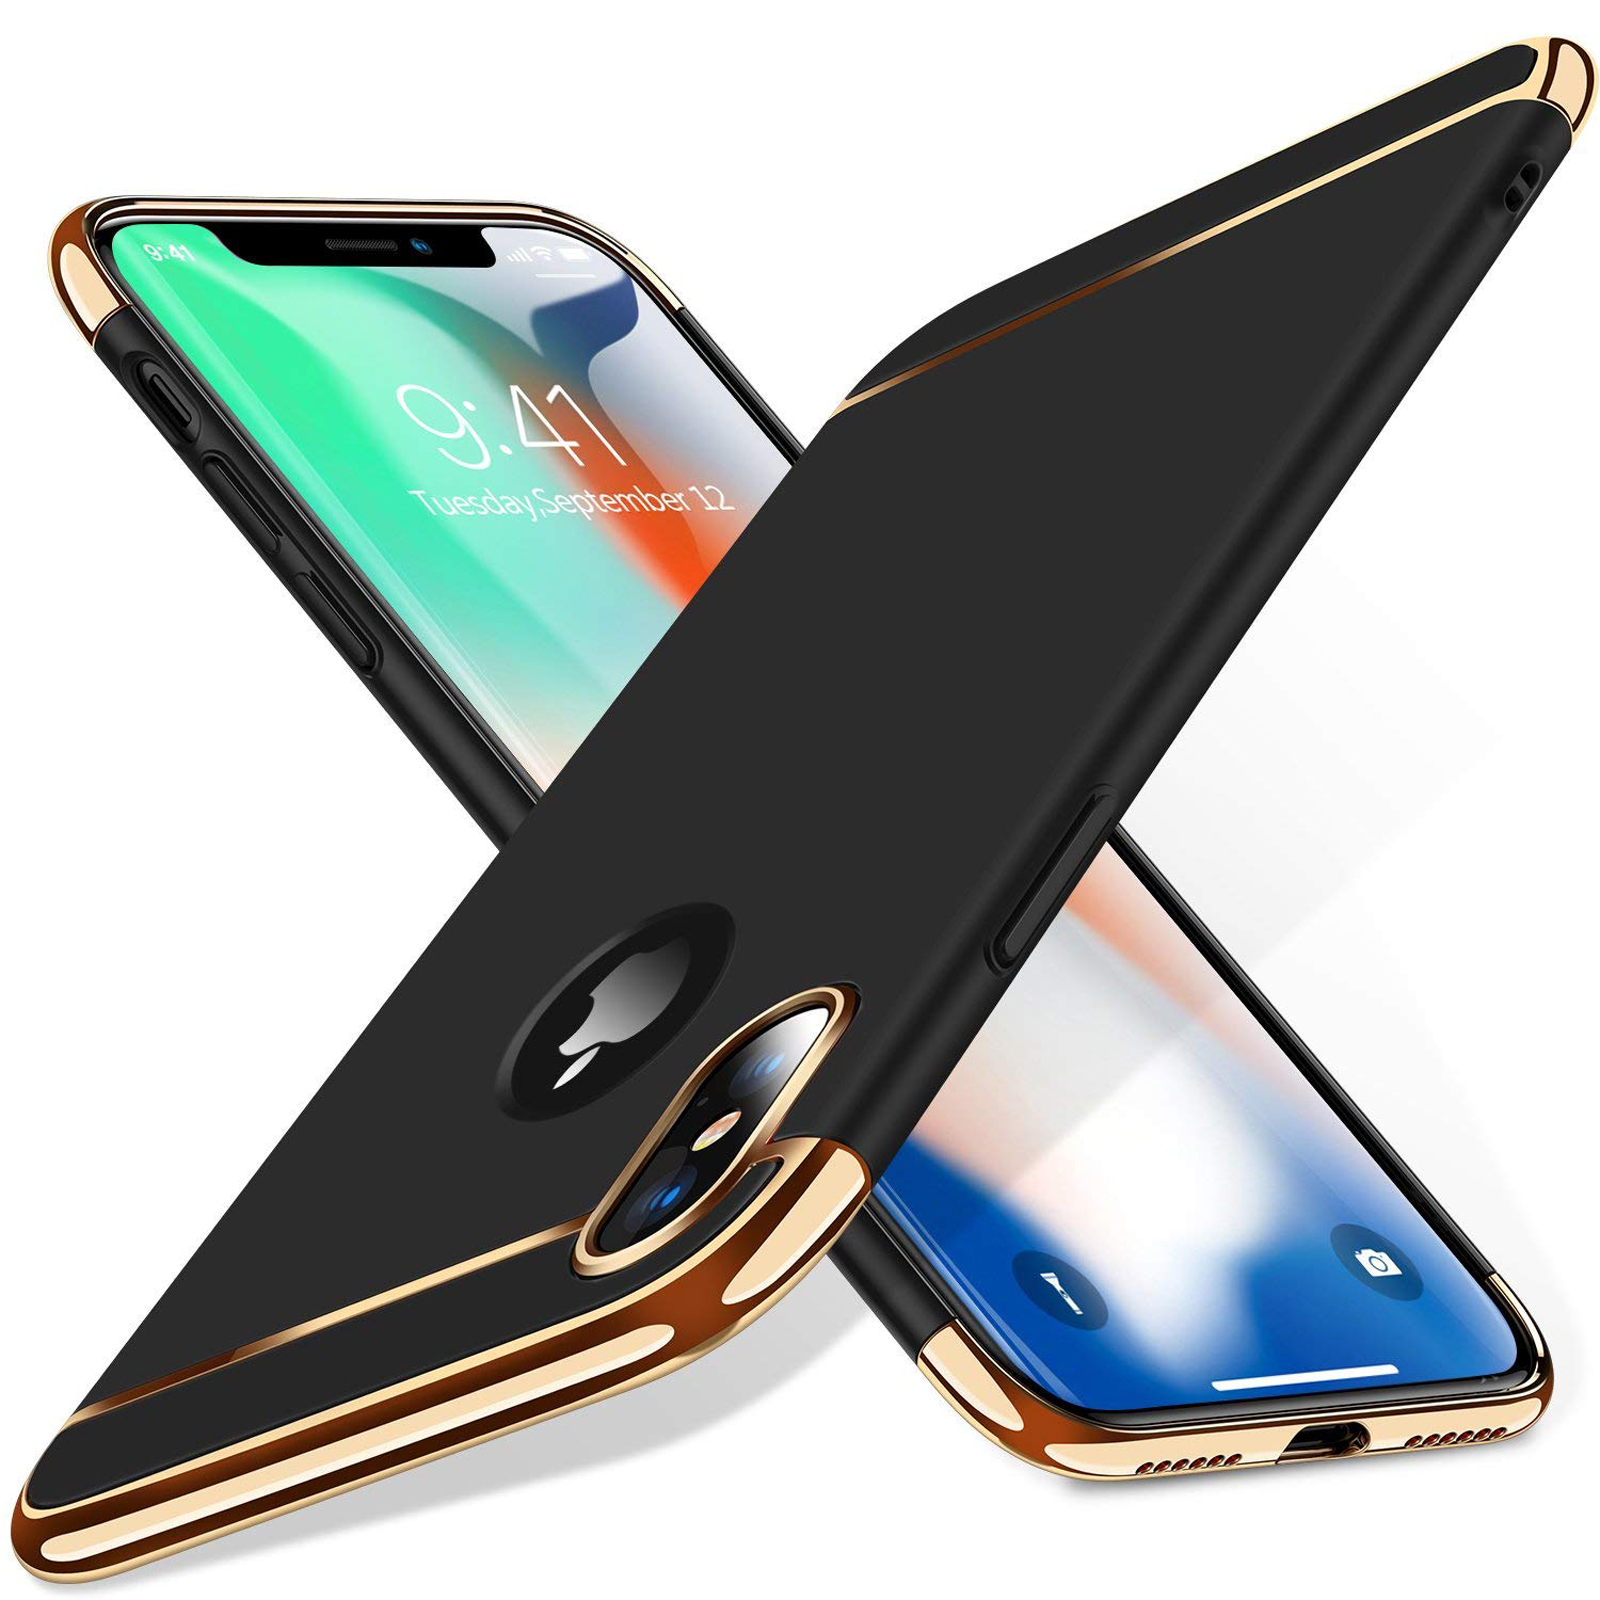 thumbnail 48 - Luxury Matte Case Tempered Glass Cover For Apple iPhone X XS XR Max 10 8 7 6s 6